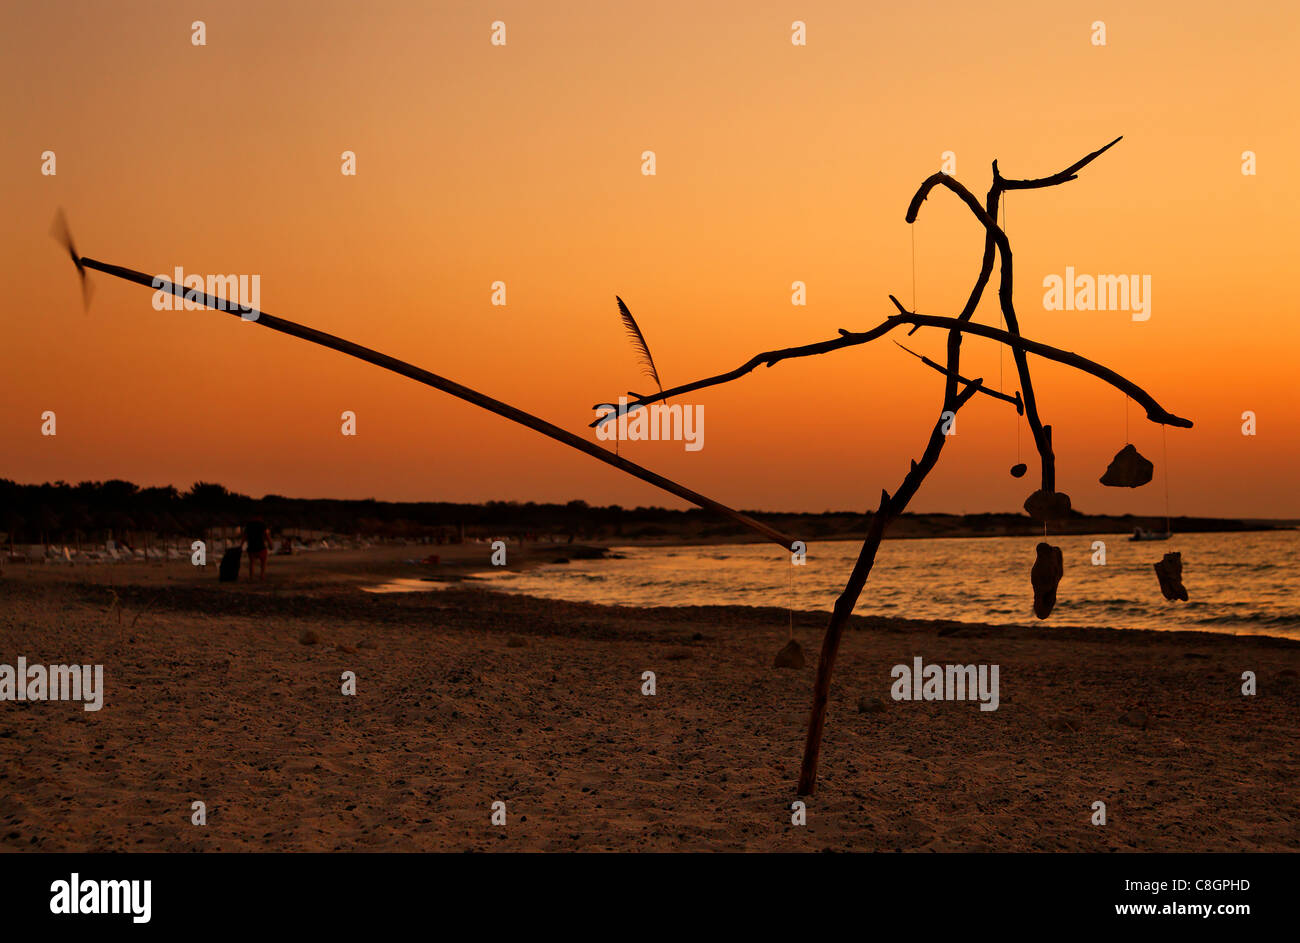 """Sunset photo from Chrissi island. In the foreground a strange """"sculpture"""" by unknown artist reminding Calder's mobiles. Stock Photo"""